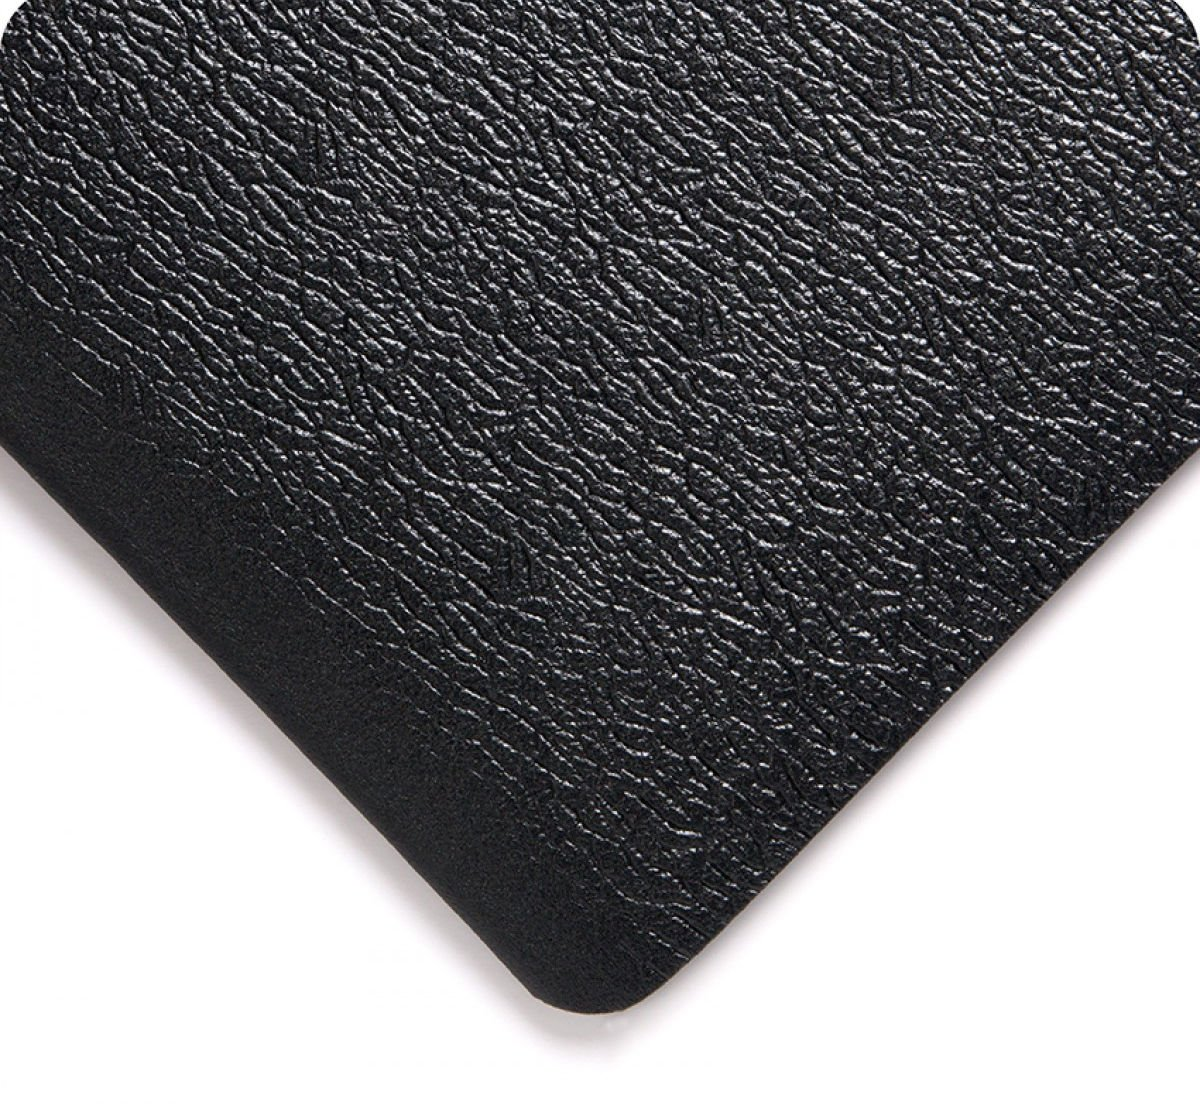 SoftStep 3/8'' Thickness Black 4' x 12' Anti-Fatigue Mat by American Floor Mats (Image #1)